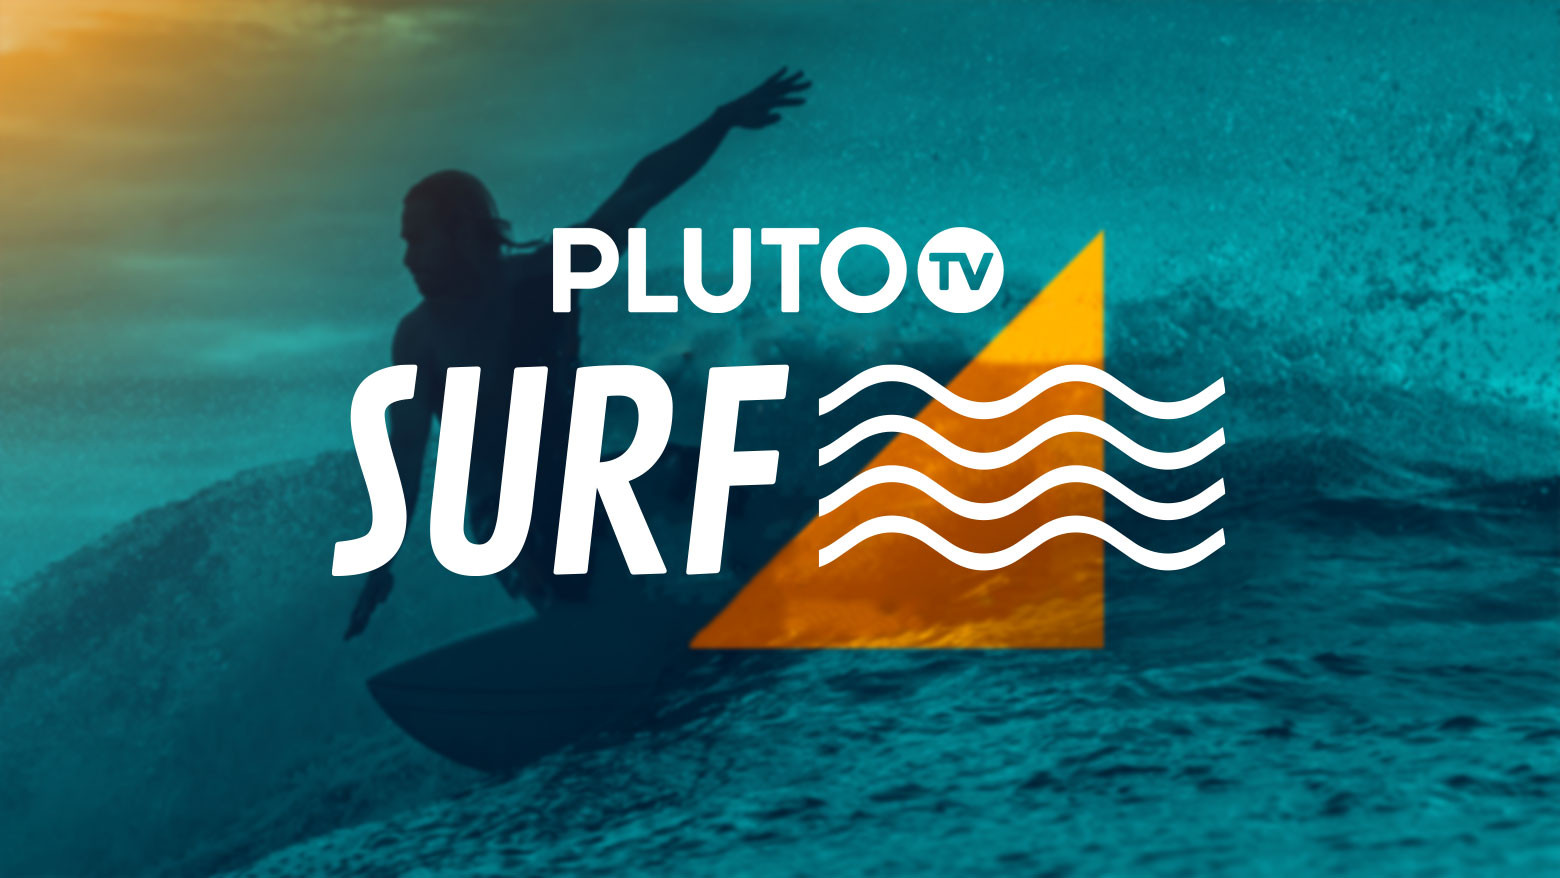 Pluto TV Surf featuredImage.jpg